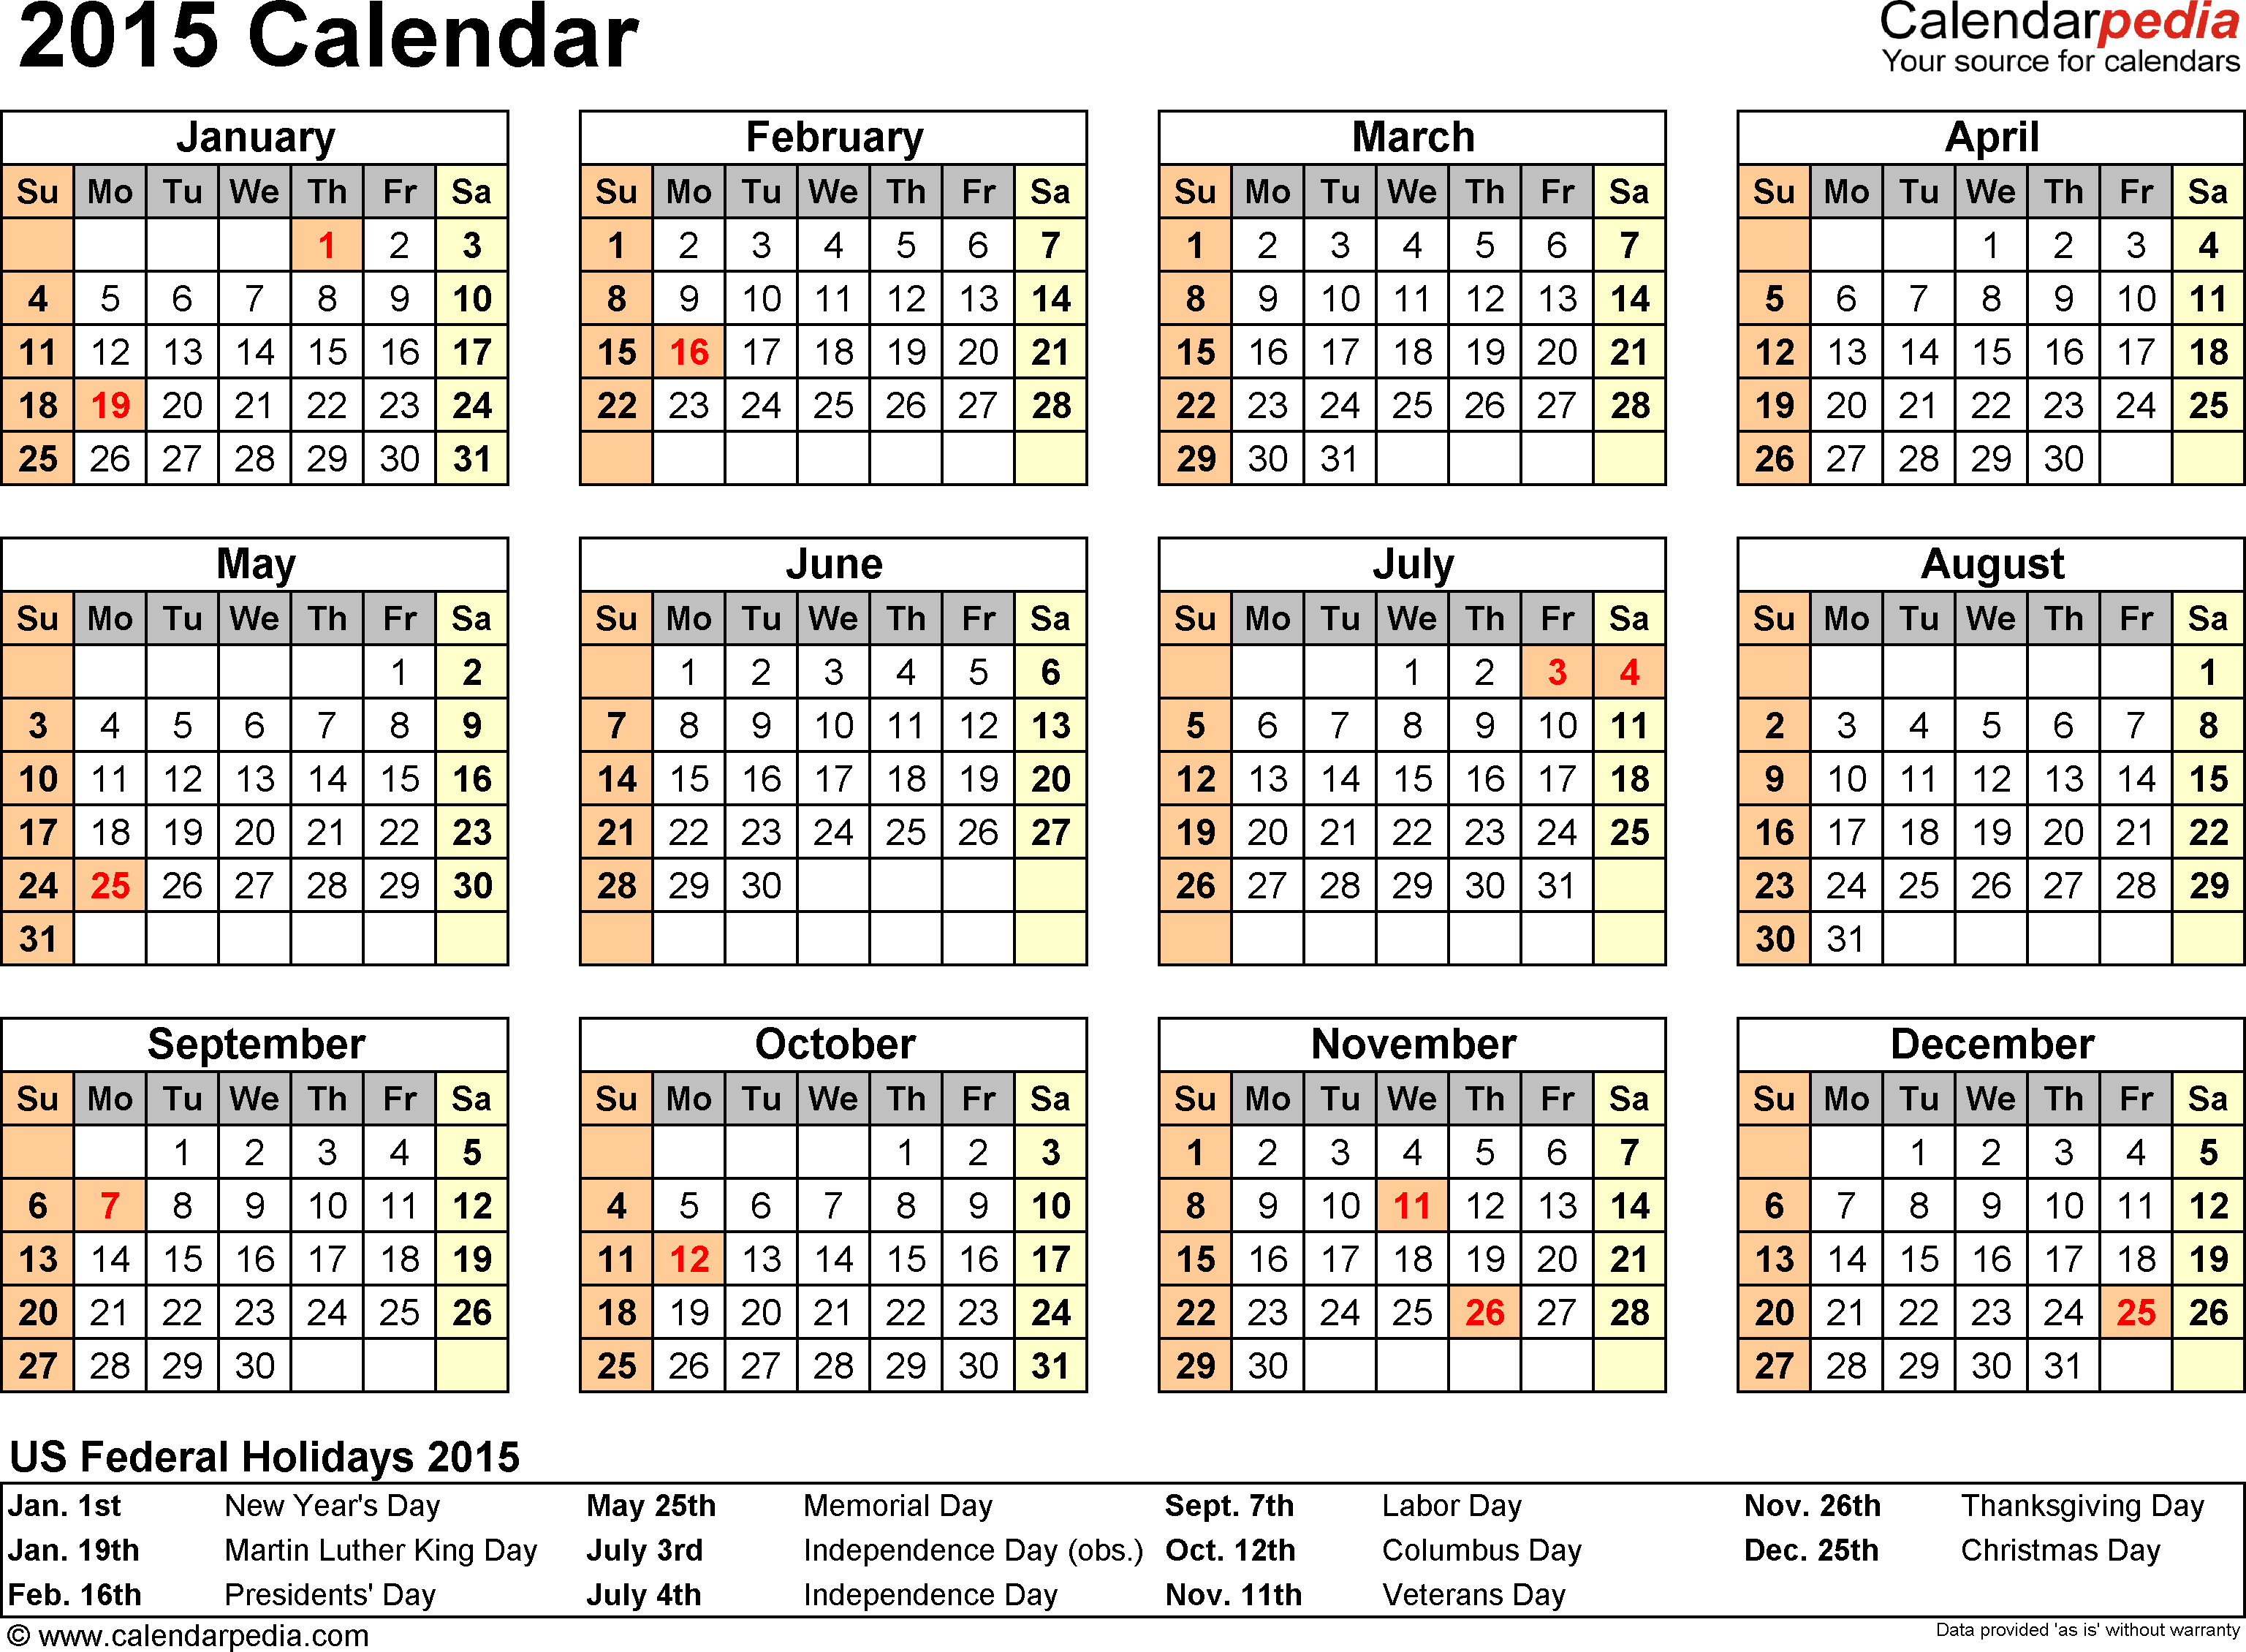 Template 8: 2015 Calendar for Word, year at a glance, 1 page